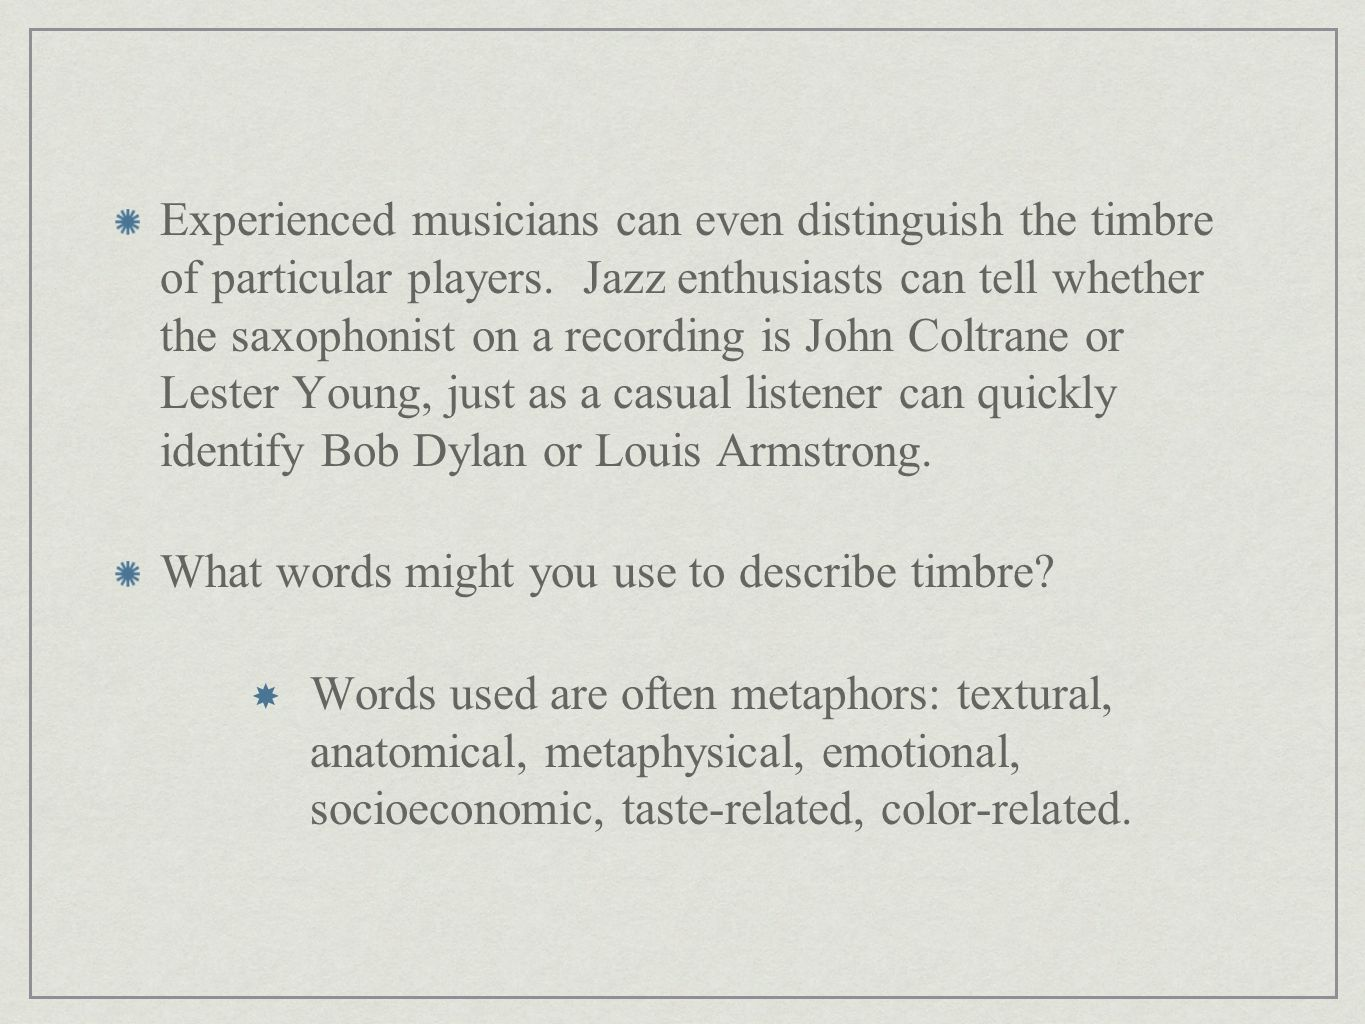 Experienced musicians can even distinguish the timbre of particular players. Jazz enthusiasts can tell whether the saxophonist on a recording is John Coltrane or Lester Young, just as a casual listener can quickly identify Bob Dylan or Louis Armstrong.